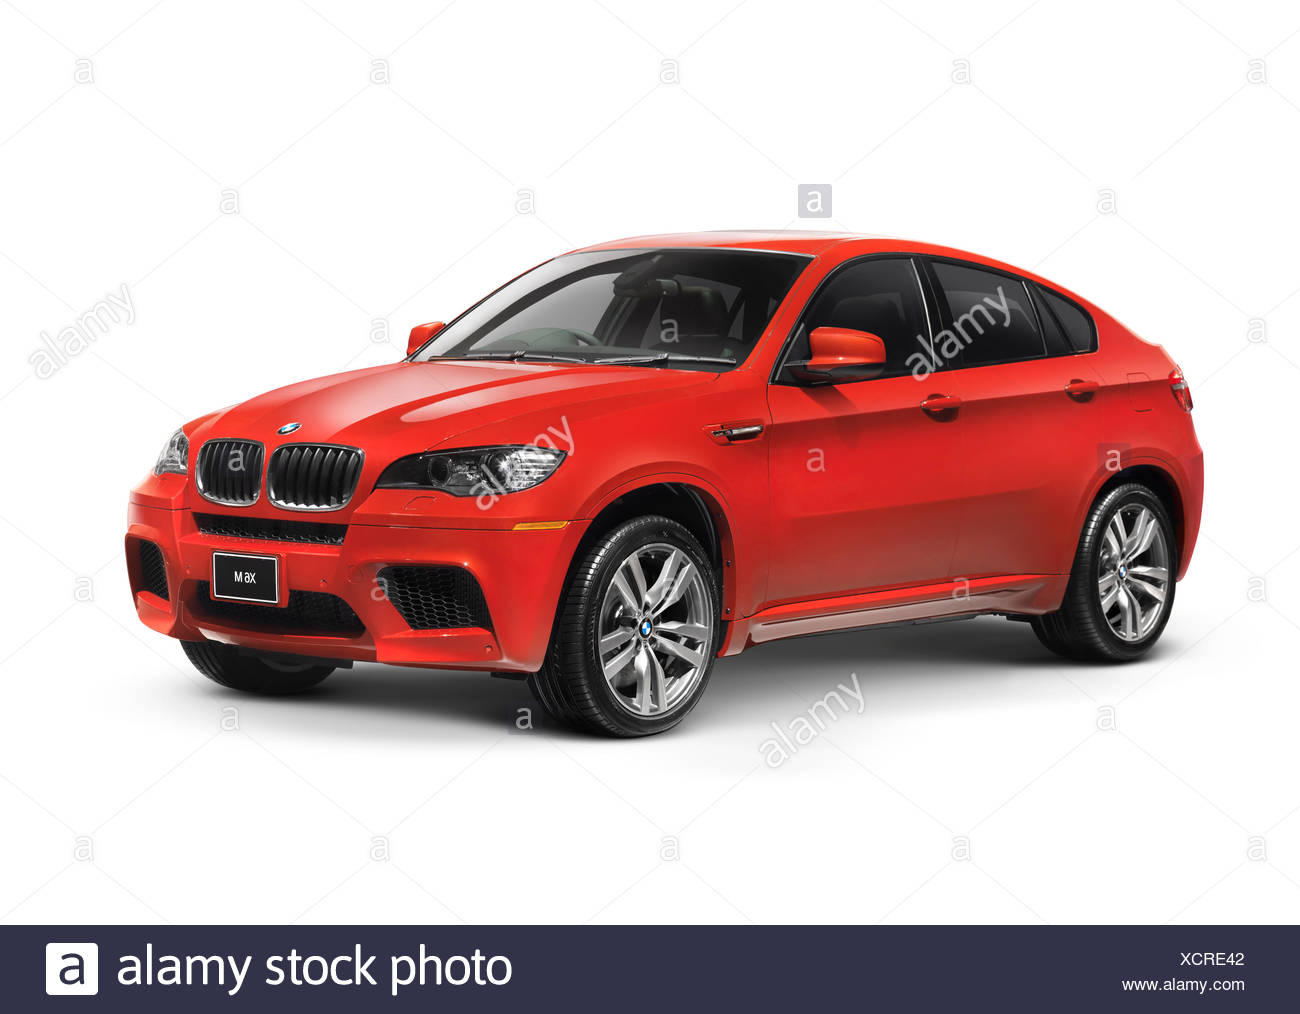 Red 2011 BMW X6 M crossover car - Stock Image